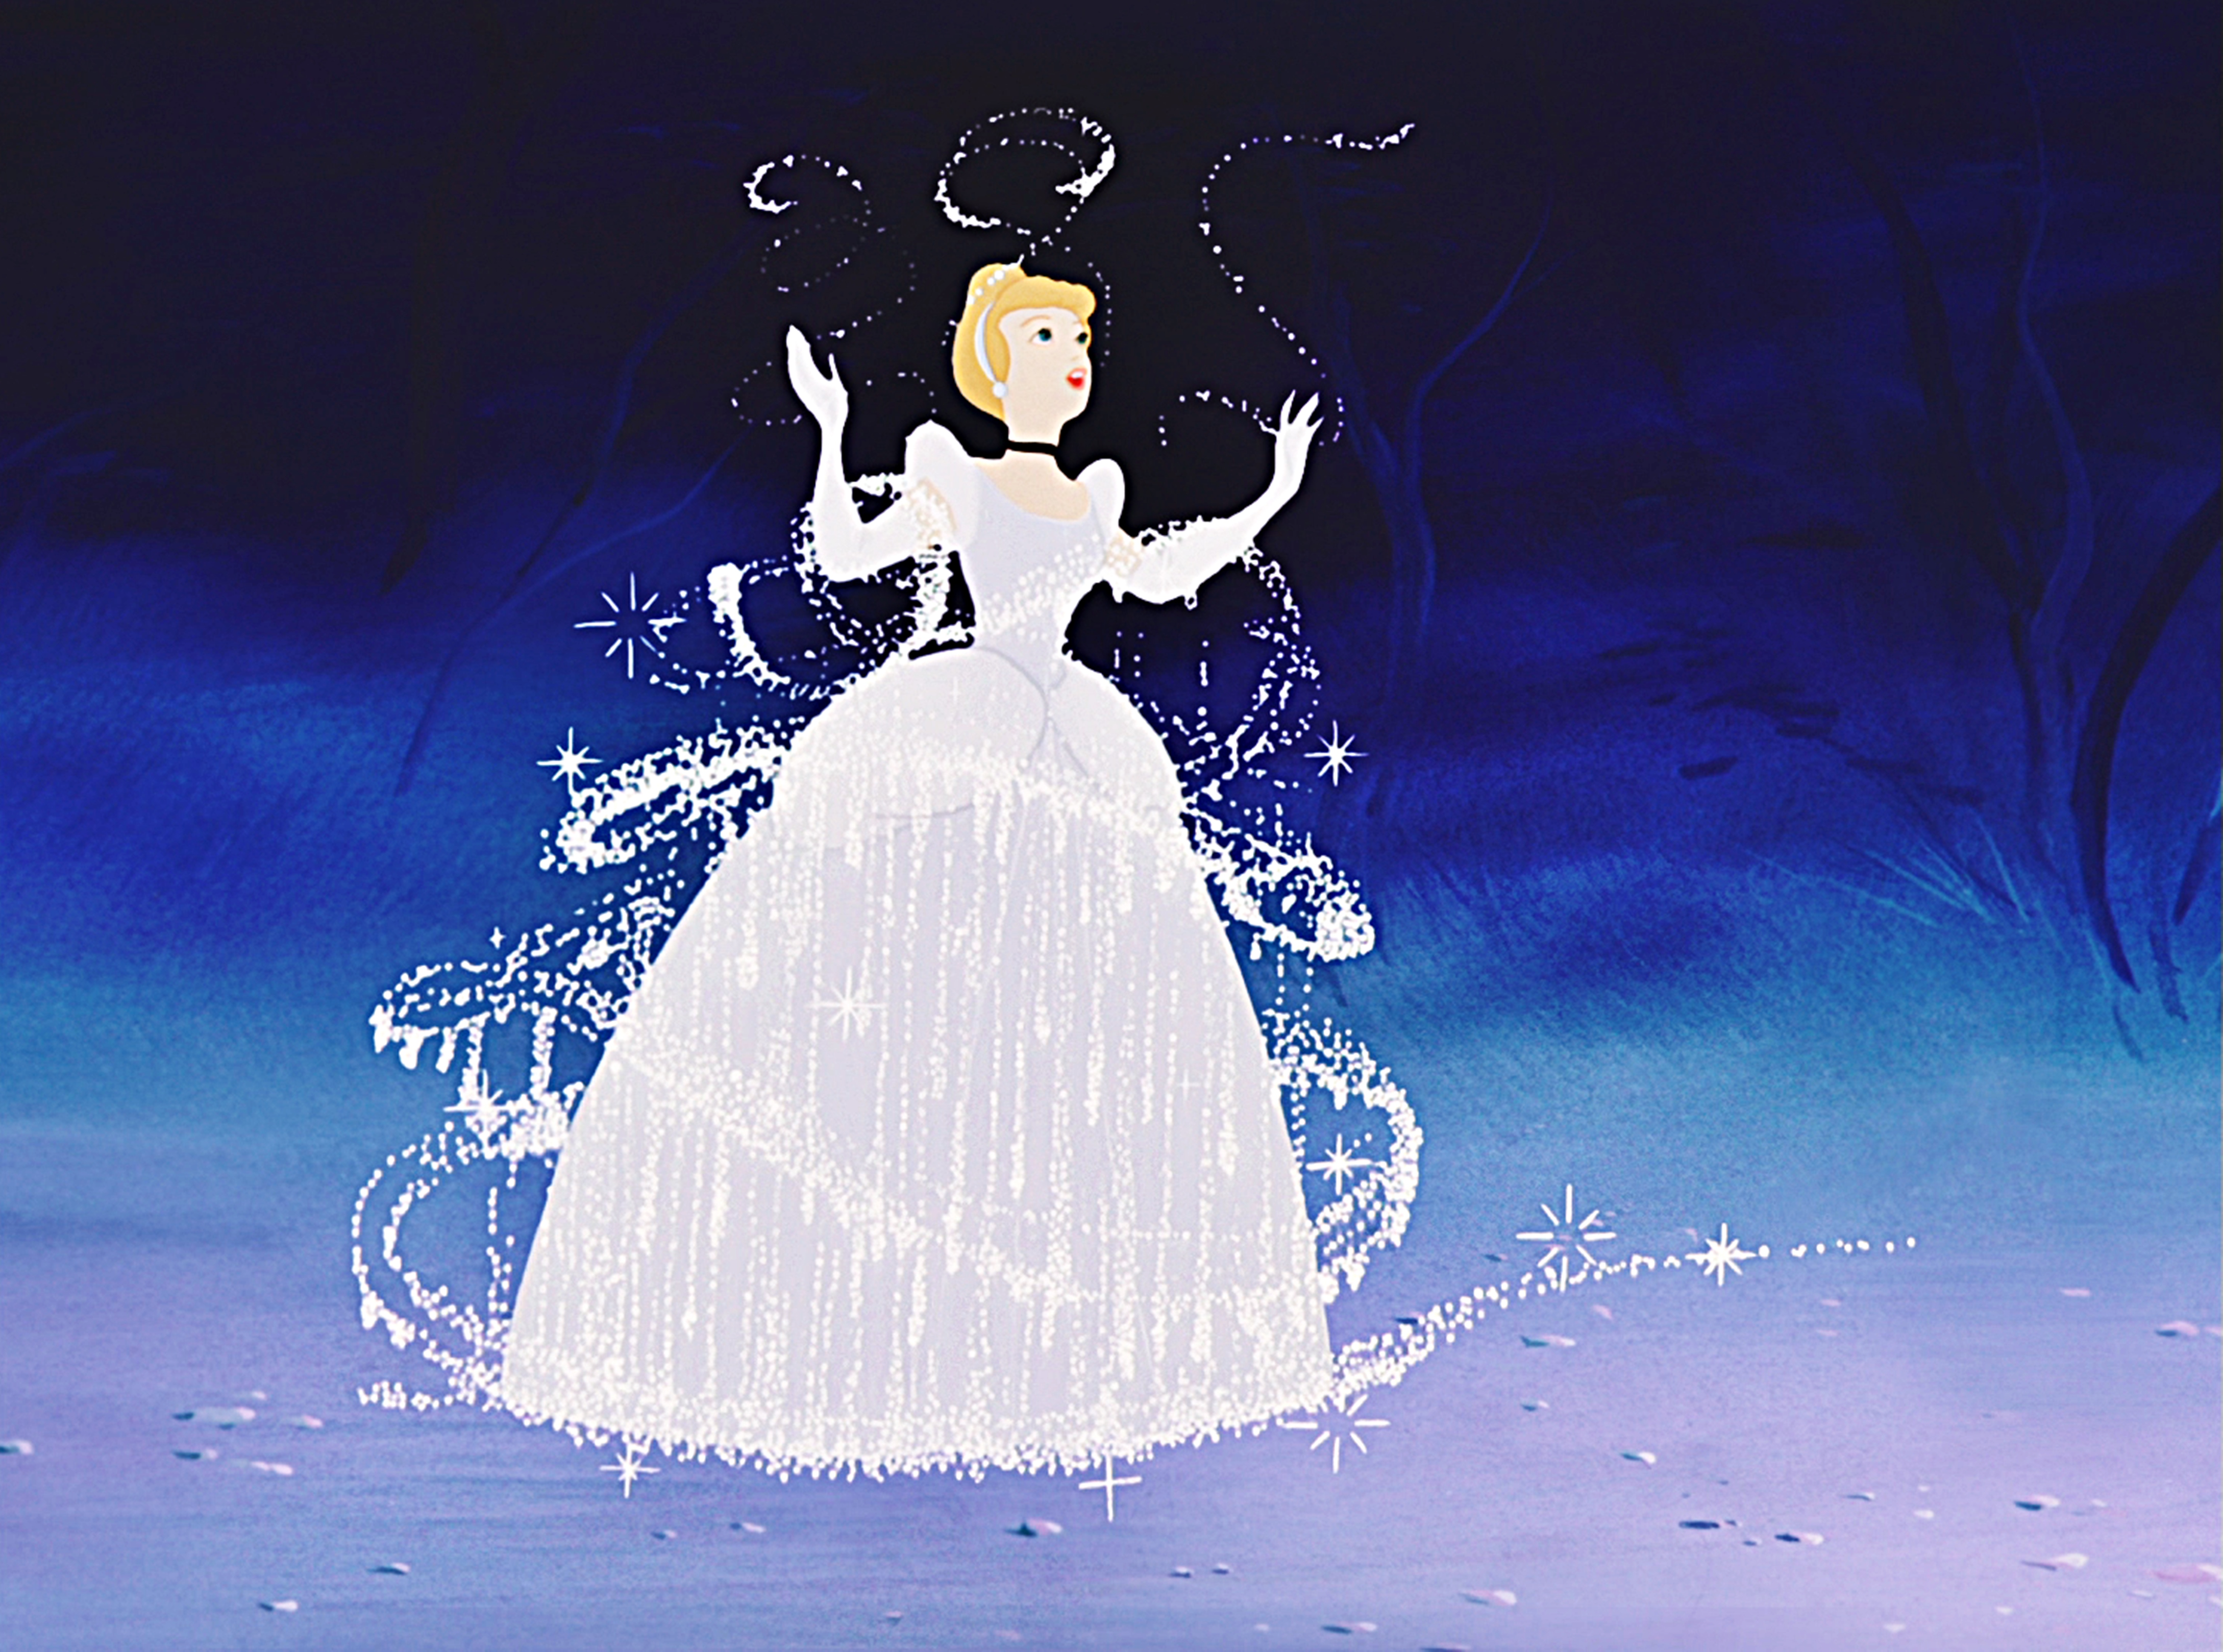 walt disney cinderella Cinderella is a 1950 american animated film produced by walt disney and based on the fairy tale cendrillon by charles perrault twelfth in the walt disney animated classics series, the film had a limited release on february 15, 1950 by rko radio pictures.